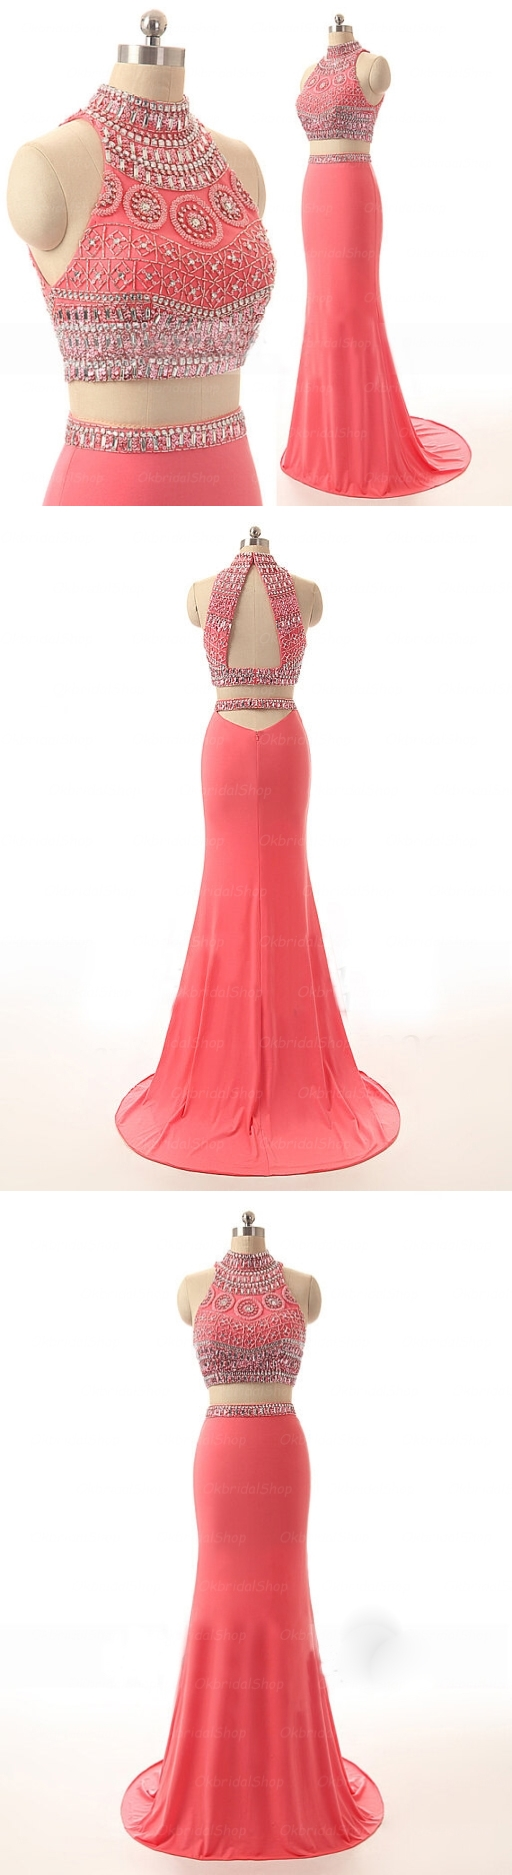 Long prom dresses pieces prom dresses sexy mermaid prom dresses